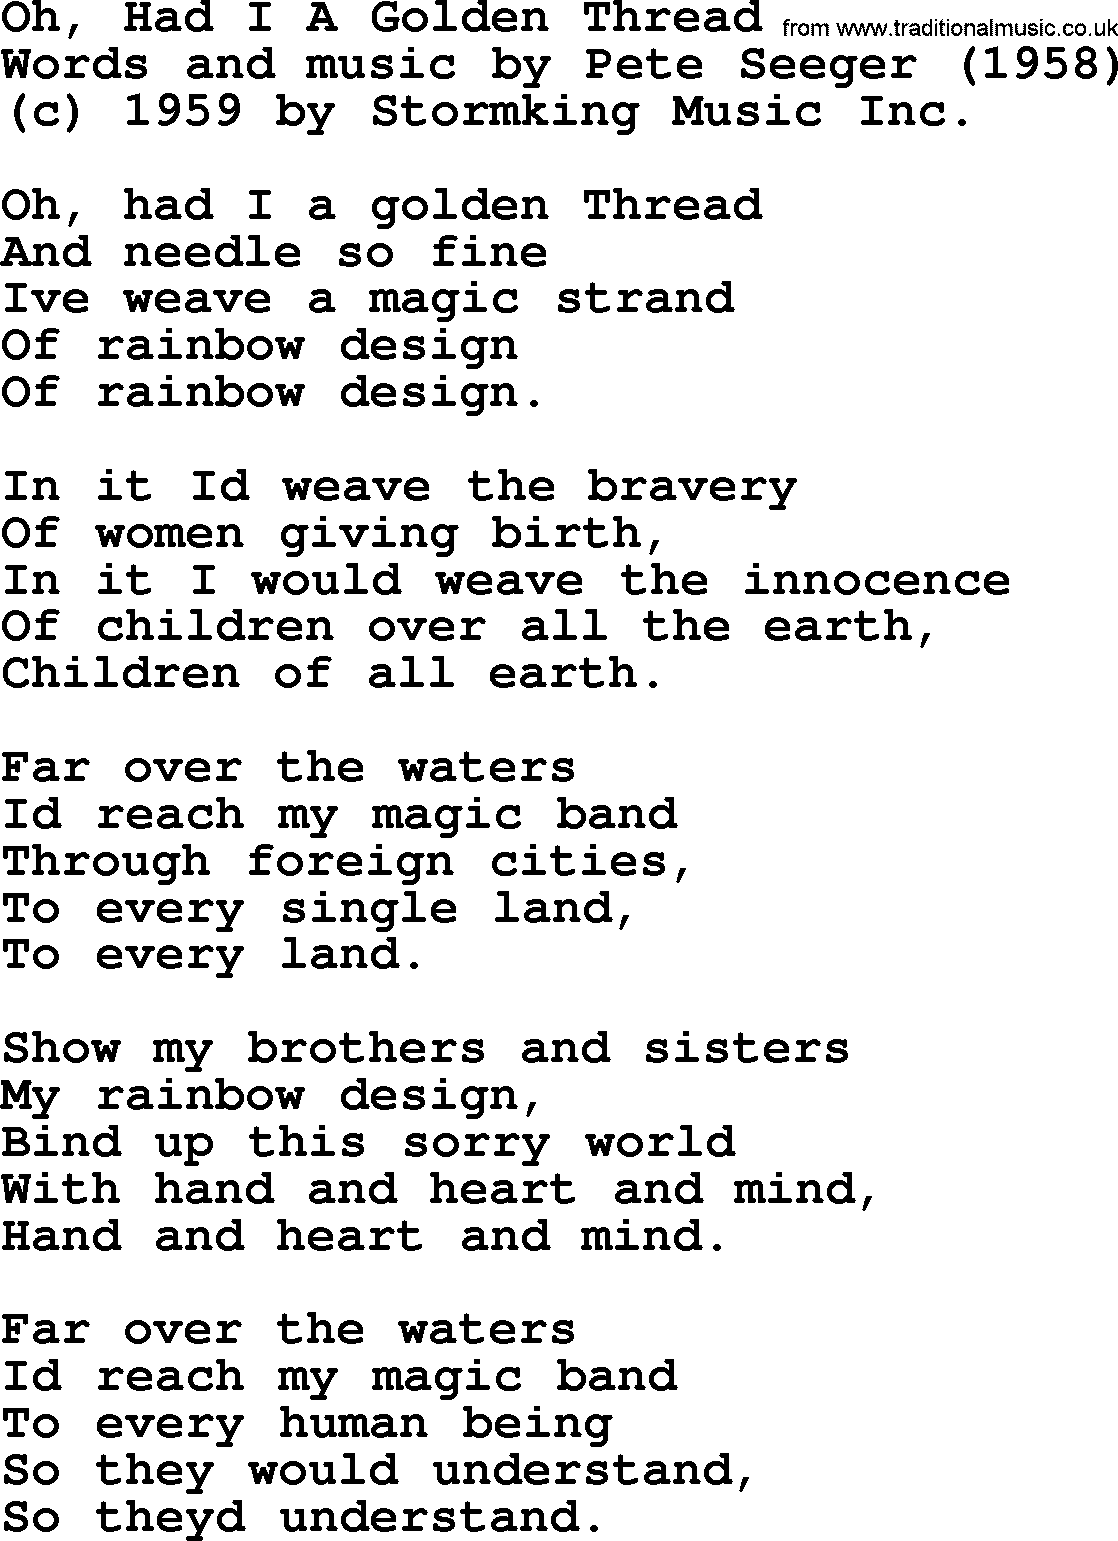 A Song for Pete Seeger The Golden Thread